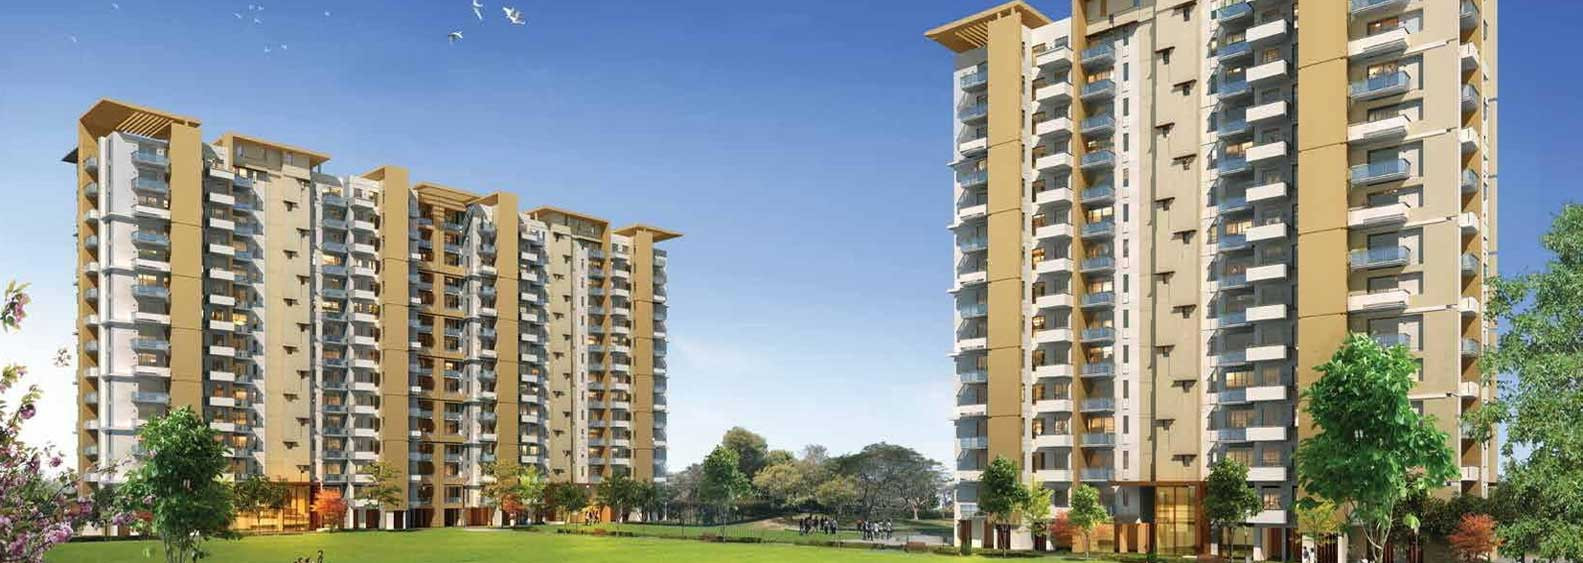 apartments in dwarka.jpg